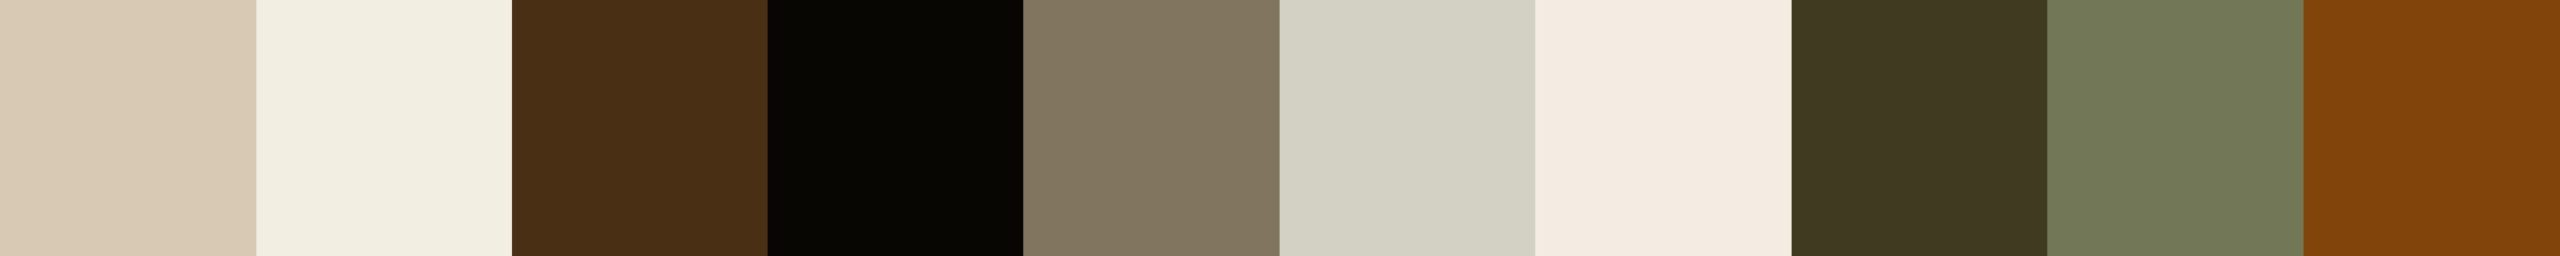 329 Pedrejovia Color Palette